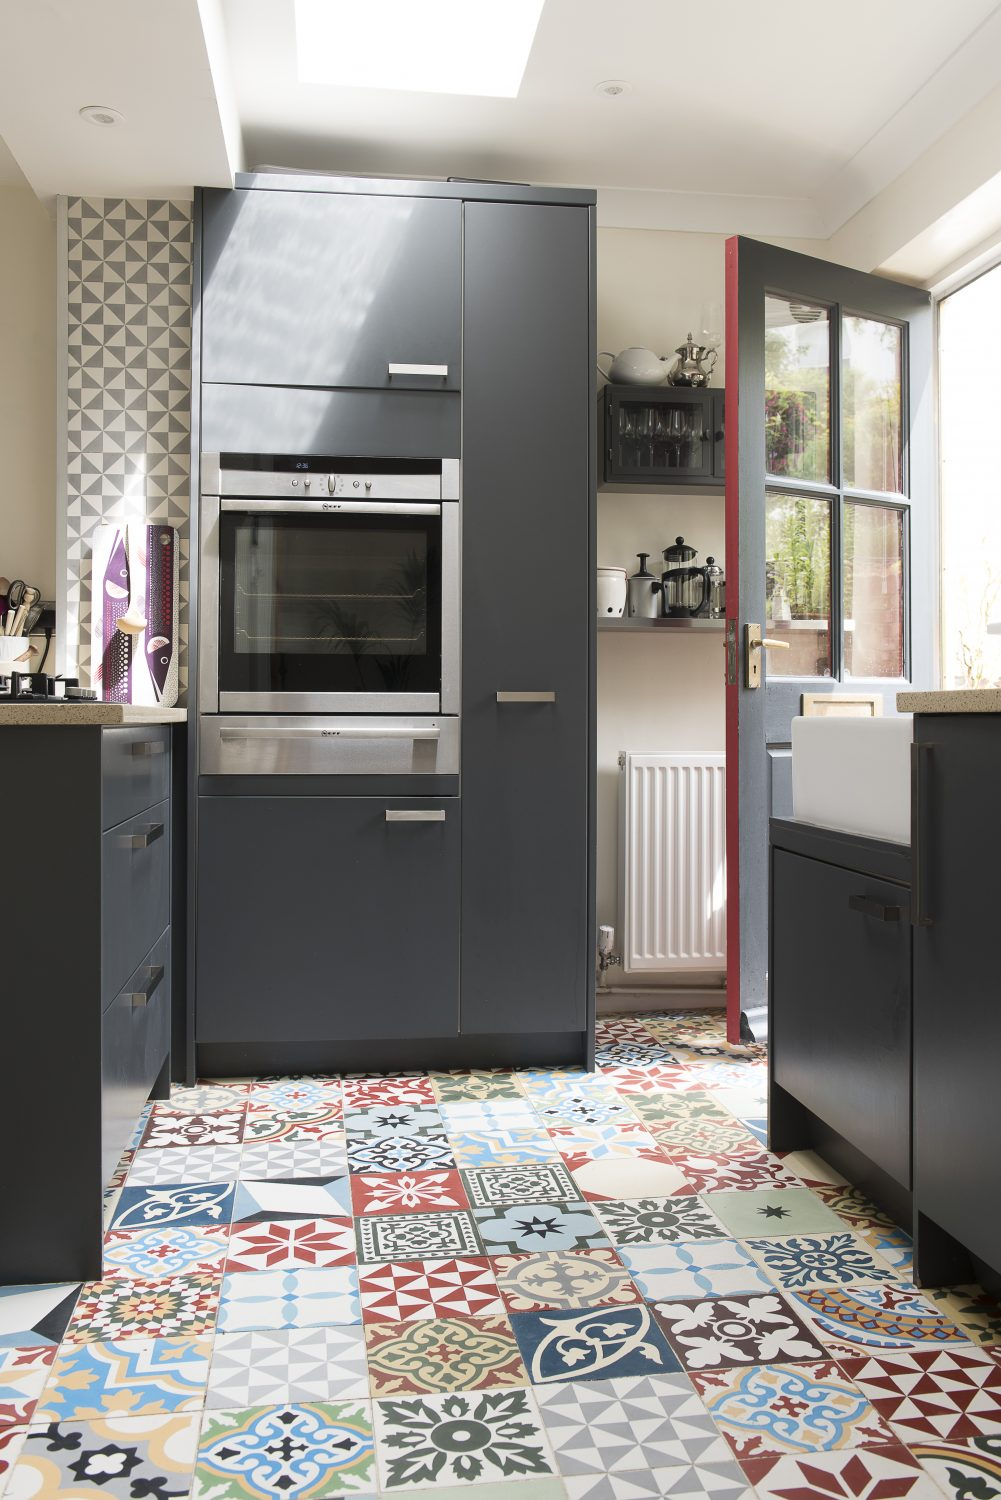 The front door opens into the kitchen. The units are from Jewsons and the encaustic tiles are from Encaustic Tiles Ltd